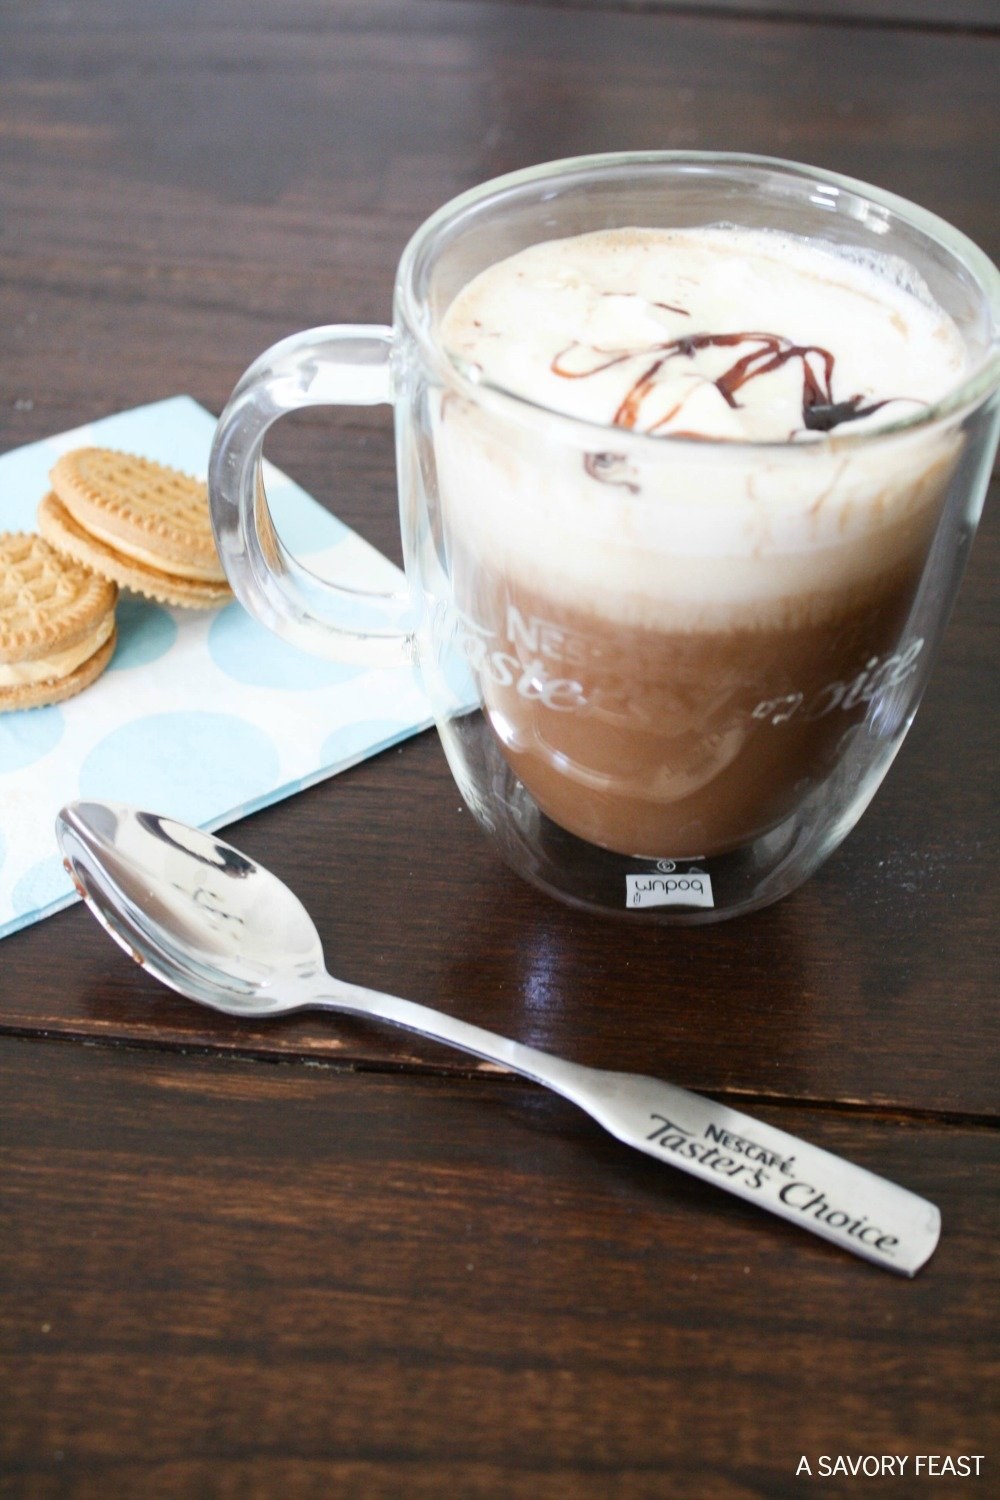 Making your own coffee shop quality drink at home is simple! This Almond Milk Mocha is made in minutes with instant coffee and a few other ingredients you probably have in the house! Dress it up with whipped cream and chocolate drizzle.